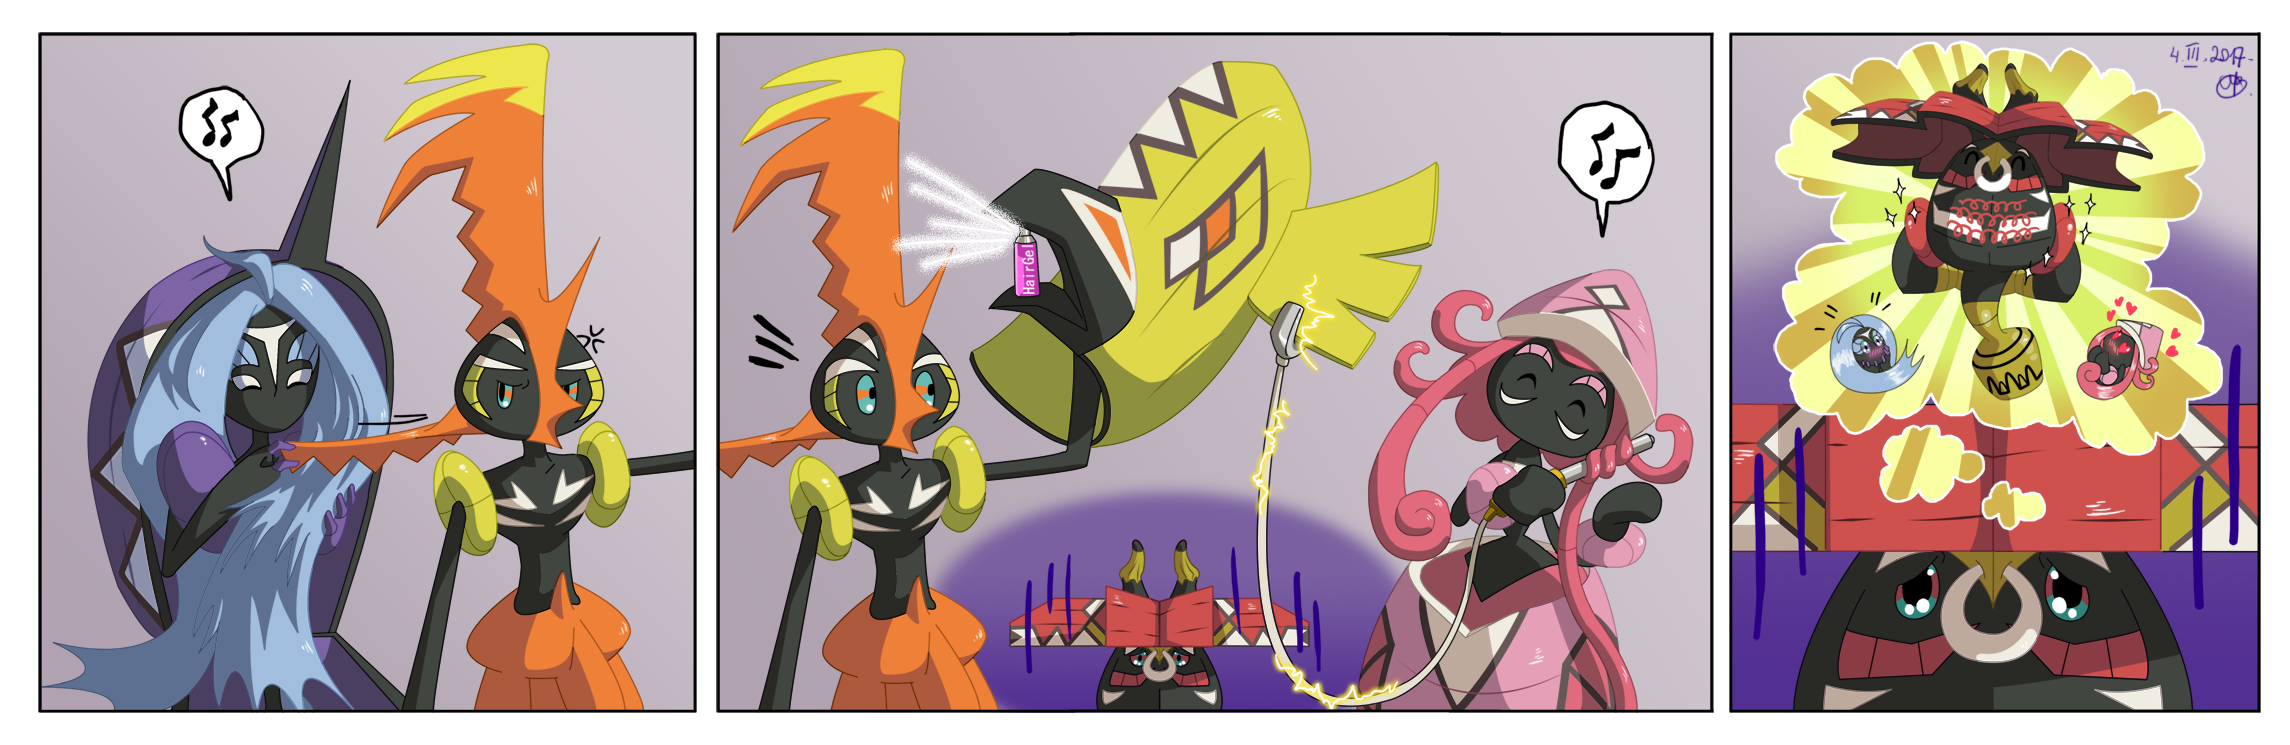 Tapus Problems 1 Tapu Bulu Has No Hair By Ari chaan On